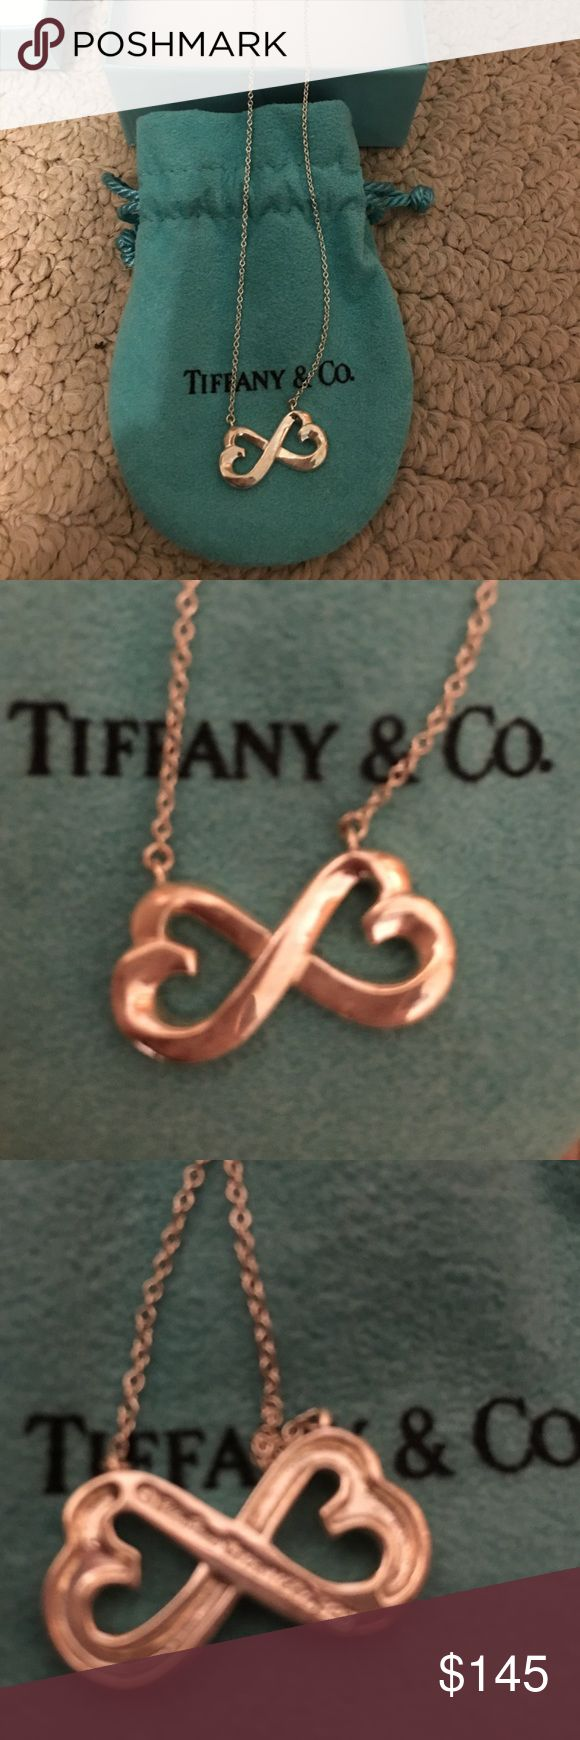 Tiffany Double heart necklace This is 100 % authentic double heart necklace, in great condition.  Only worn once.  Comes with original blue pouch and box. Tiffany & Co. Jewelry Necklaces